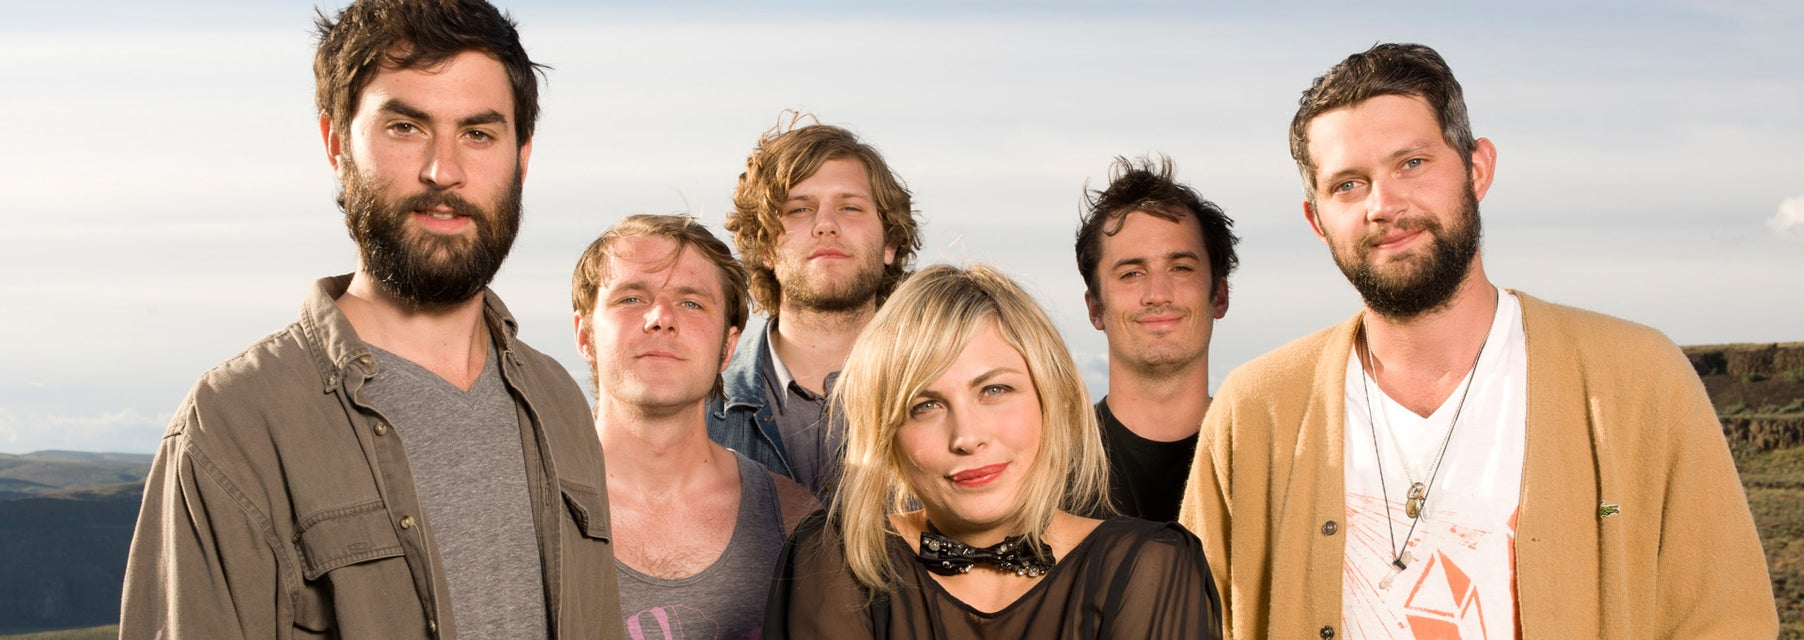 The Head and the Heart Tickets